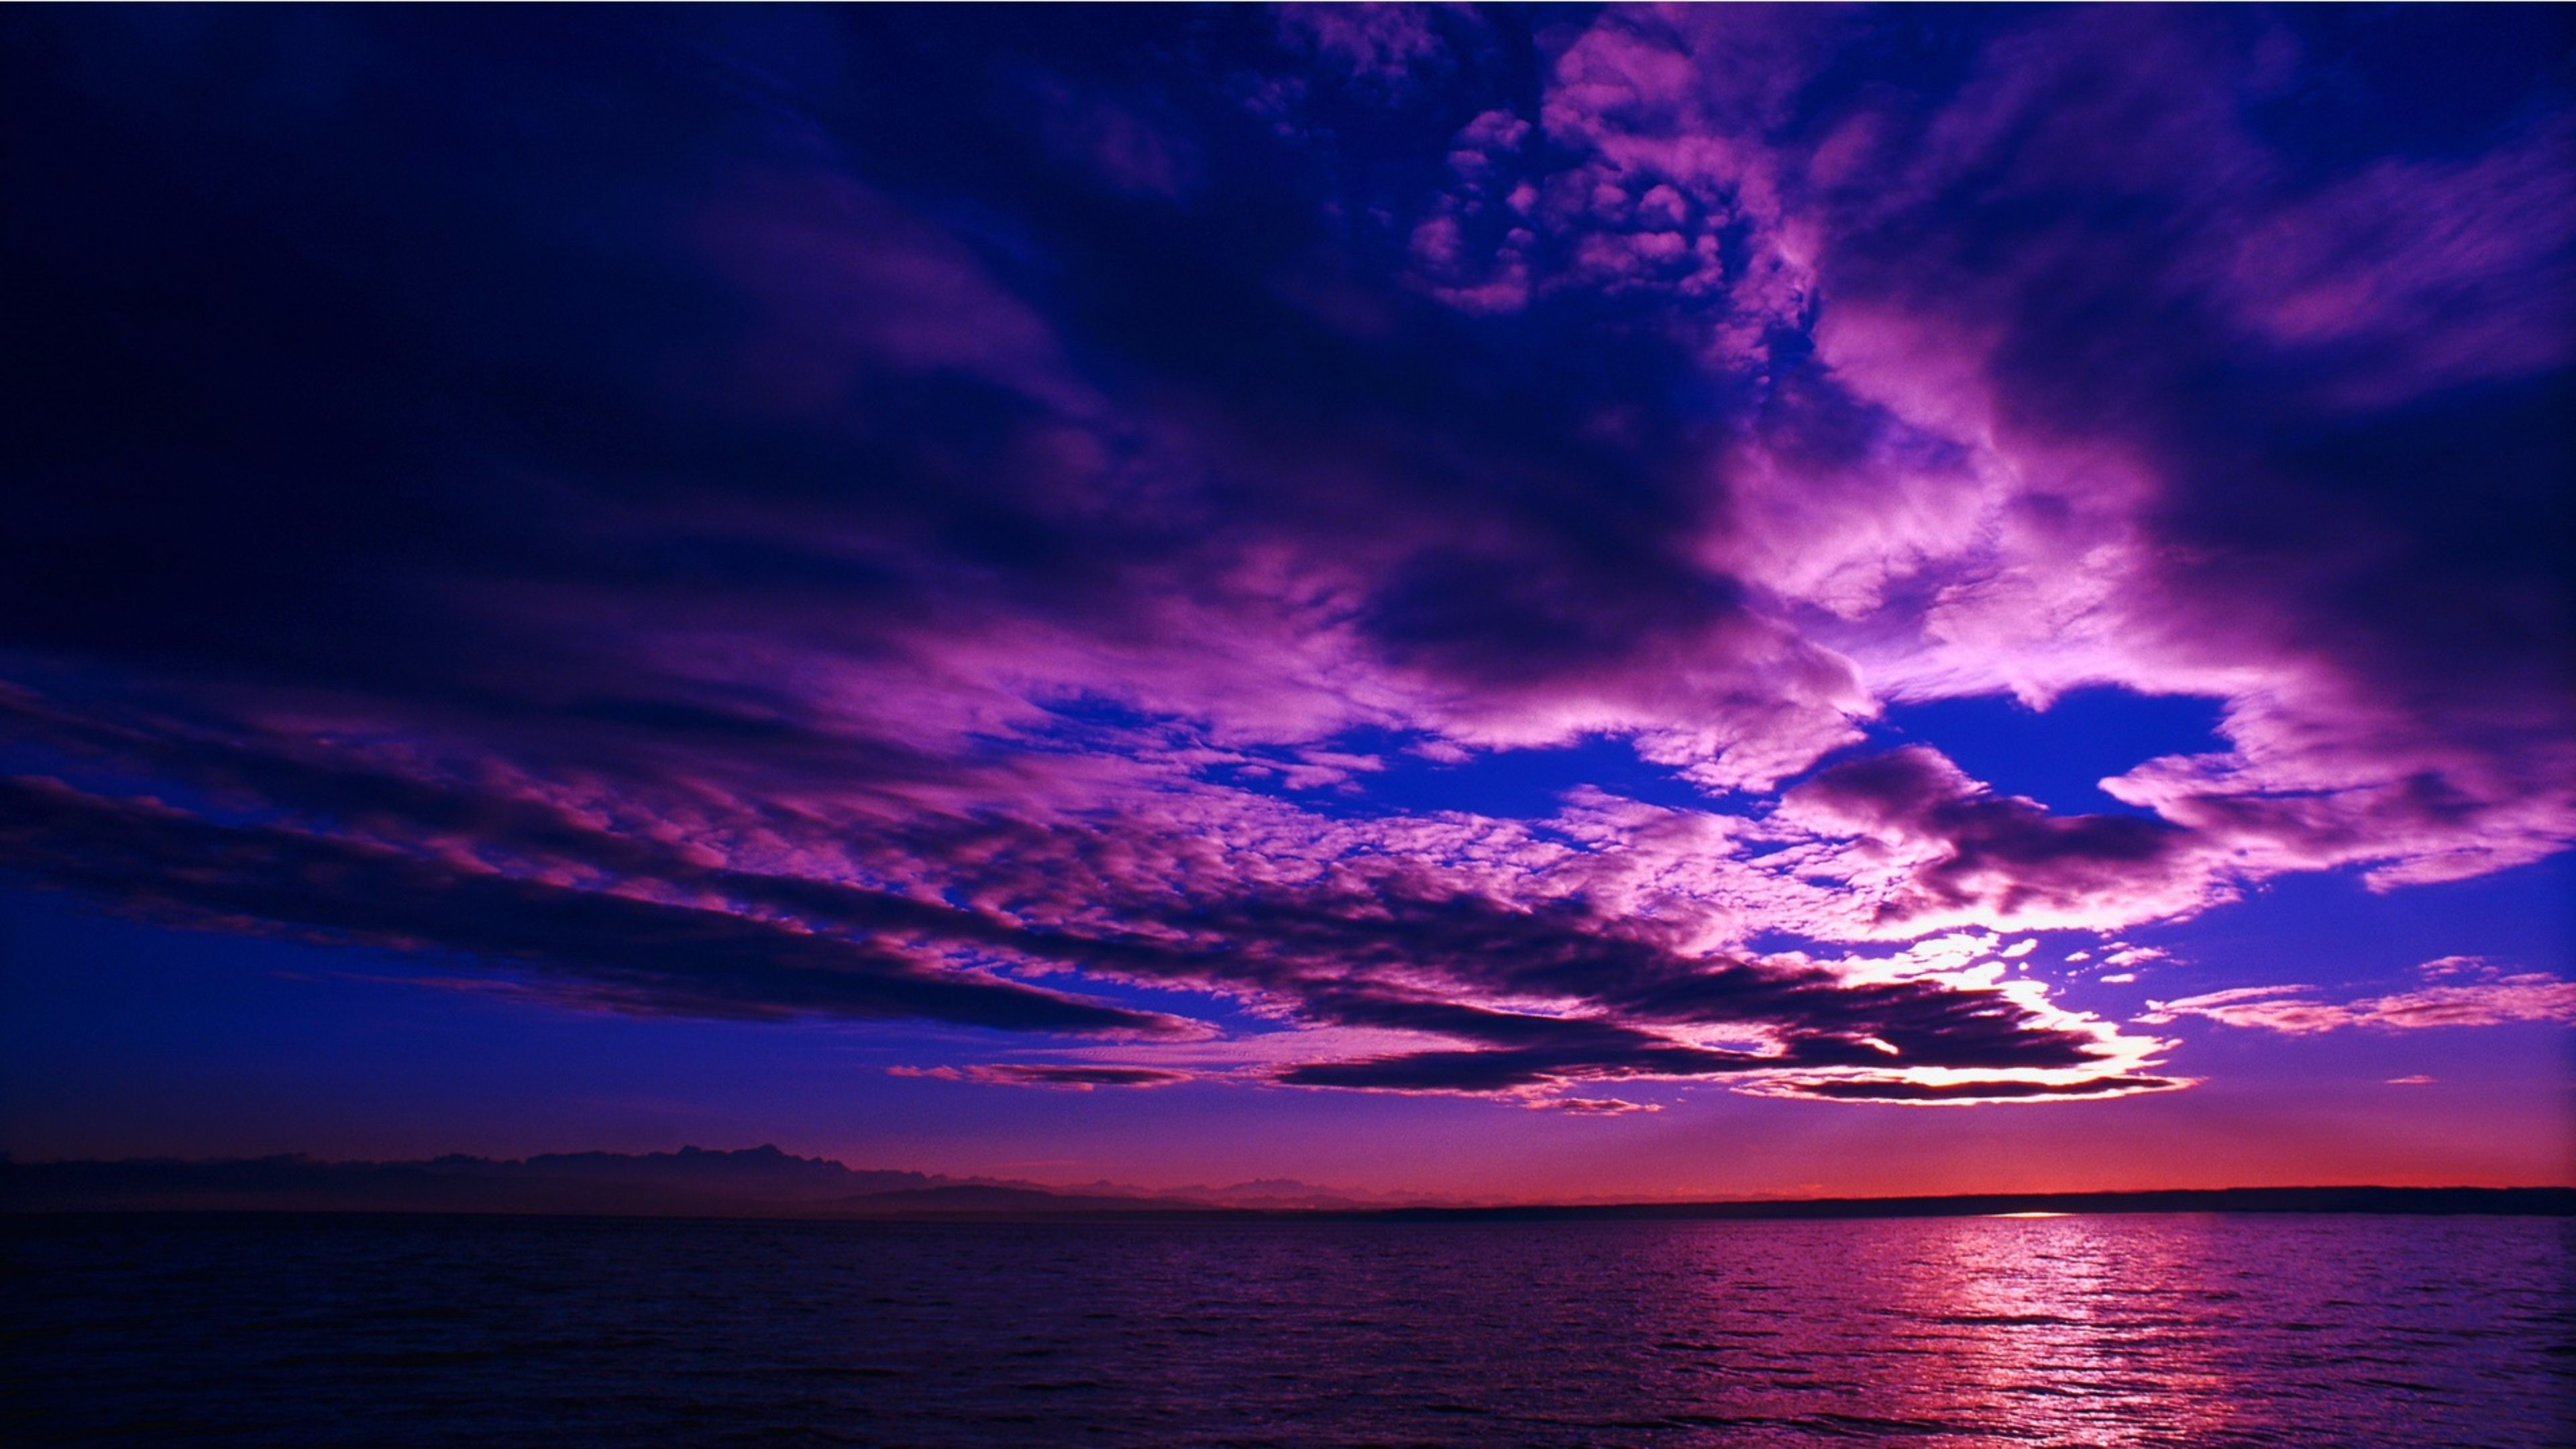 Purple Sky 4K Sunset Wallpaper 4K Wallpaper 3840x2160